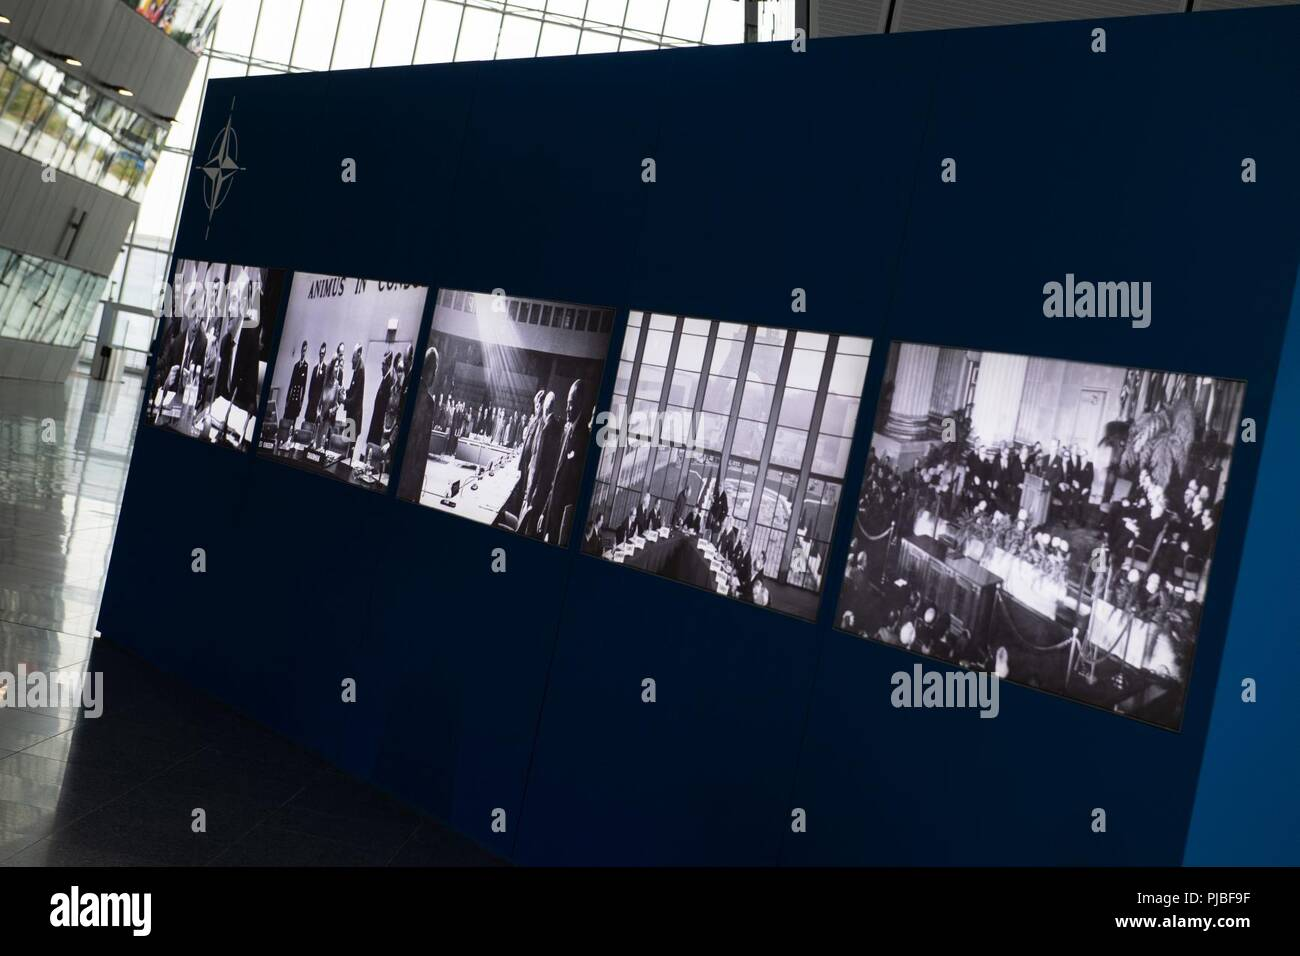 A display illuminates with historical photos of NATO during the Brussels Summit at NATO HQ, Brussels, Belgium, July 11, 2018. The Brussels Summit is the most recent iteration of the gathering of the North Atlantic Council when NATO heads of state and government join to discuss and decide the future of the Alliance. (NATO - Stock Image